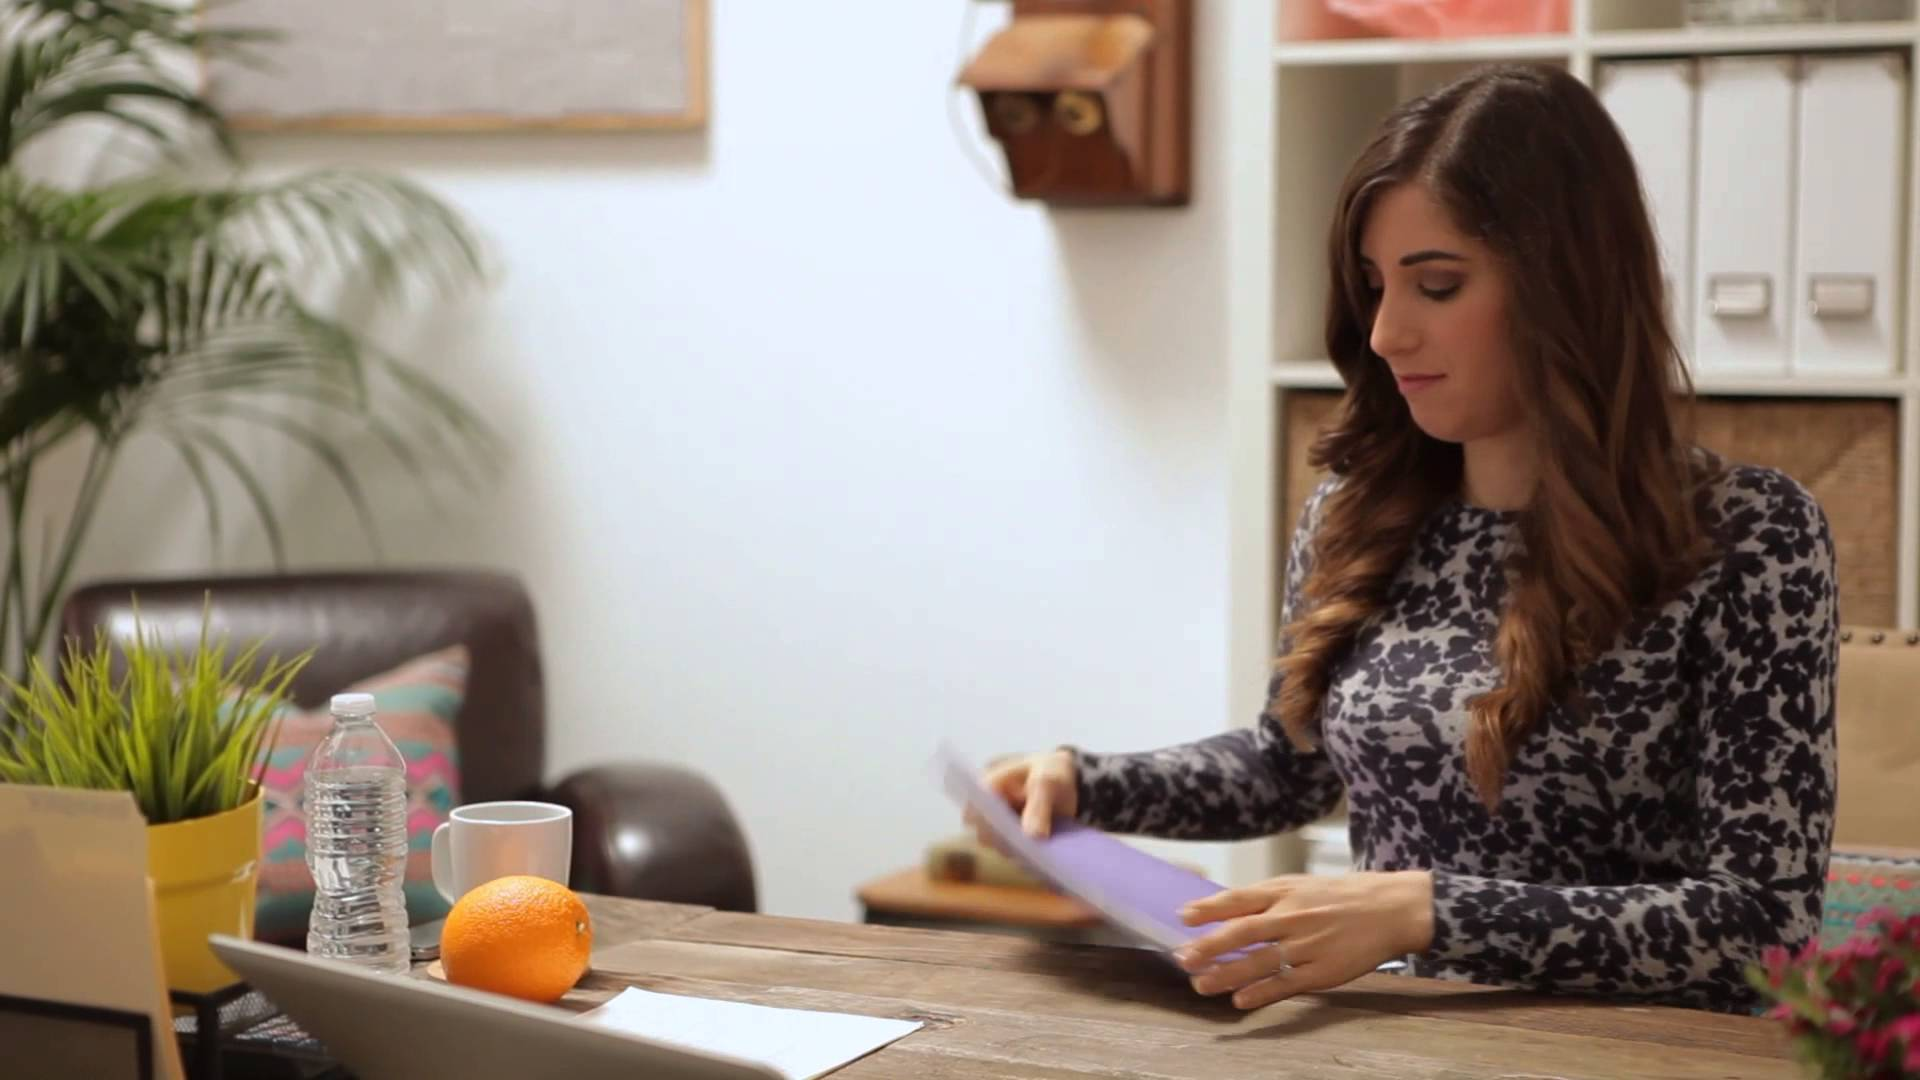 Five Things to Make Your Home Office Work for You